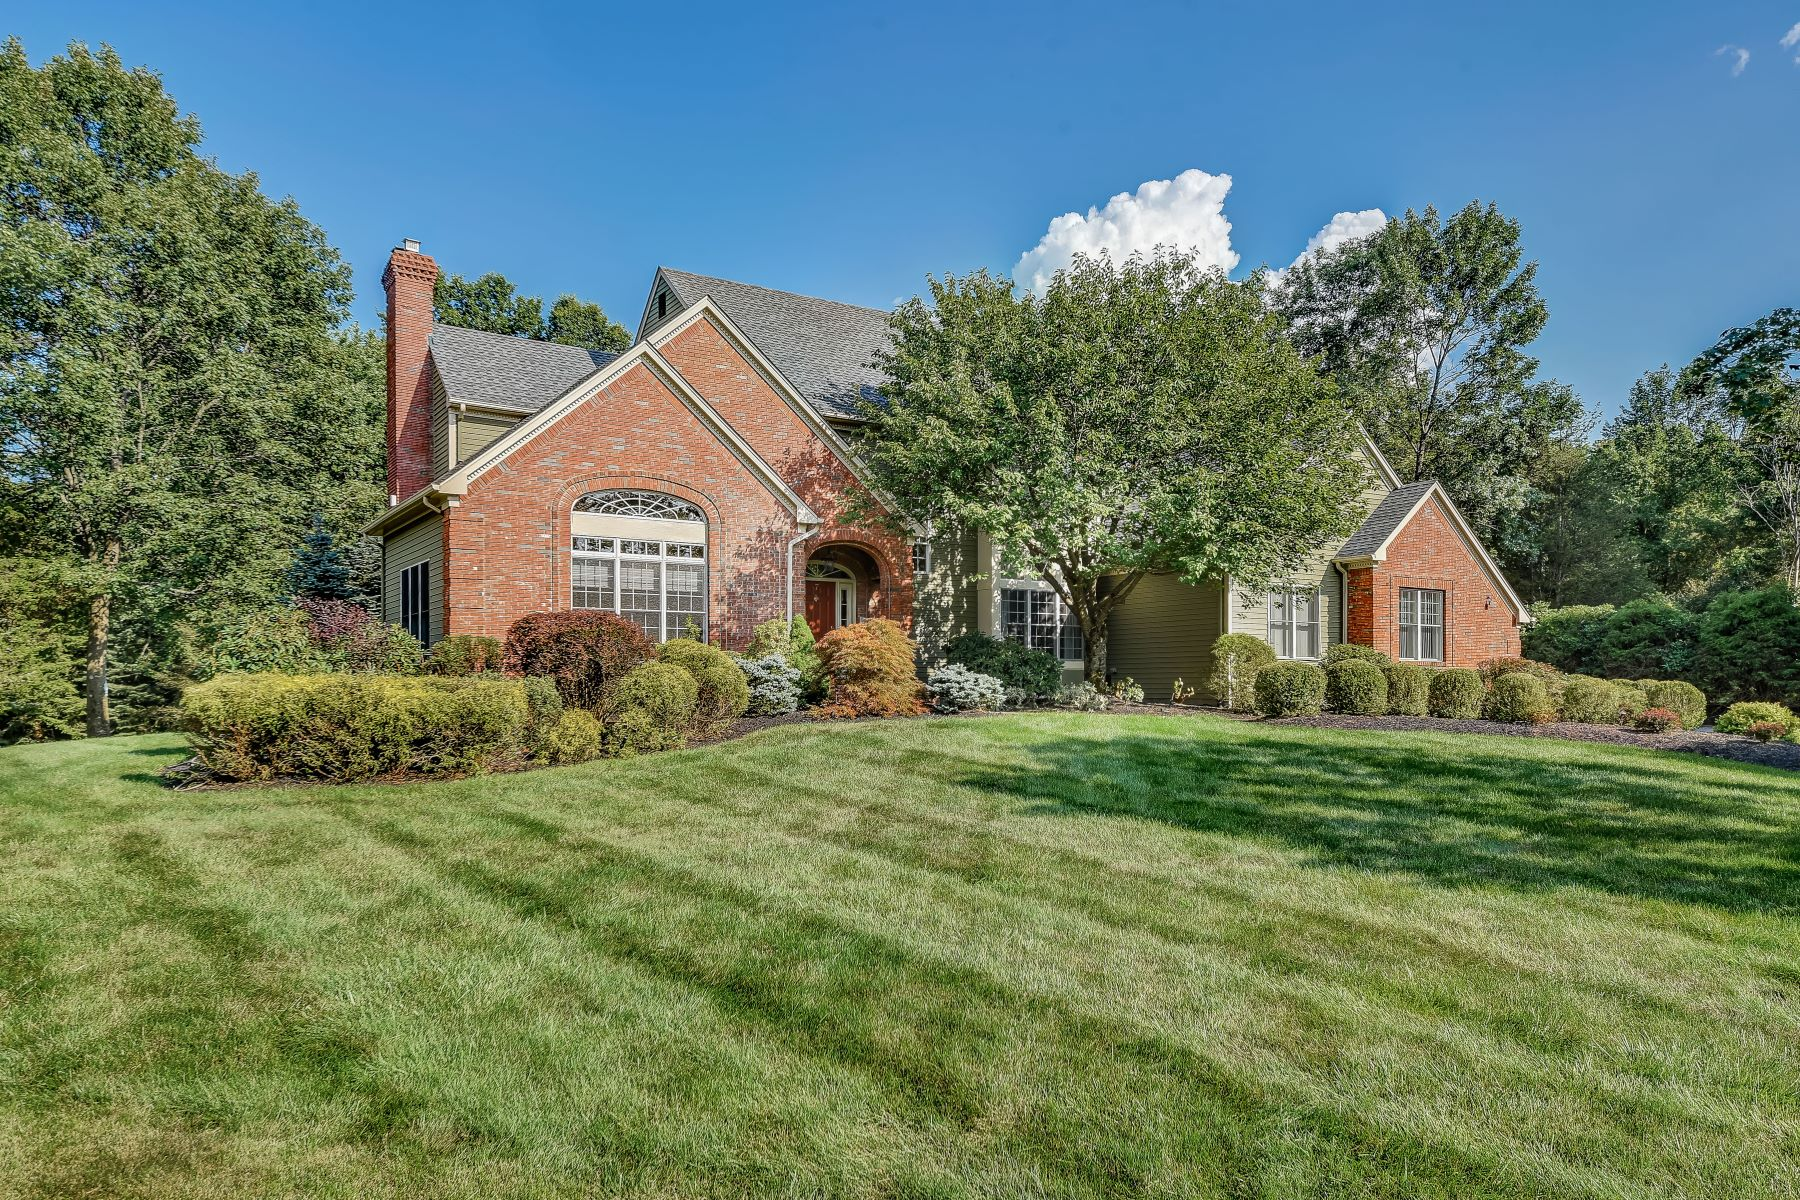 Single Family Home for Sale at Elegant Colonial 7 Yorkshire Court Basking Ridge, New Jersey 07920 United States